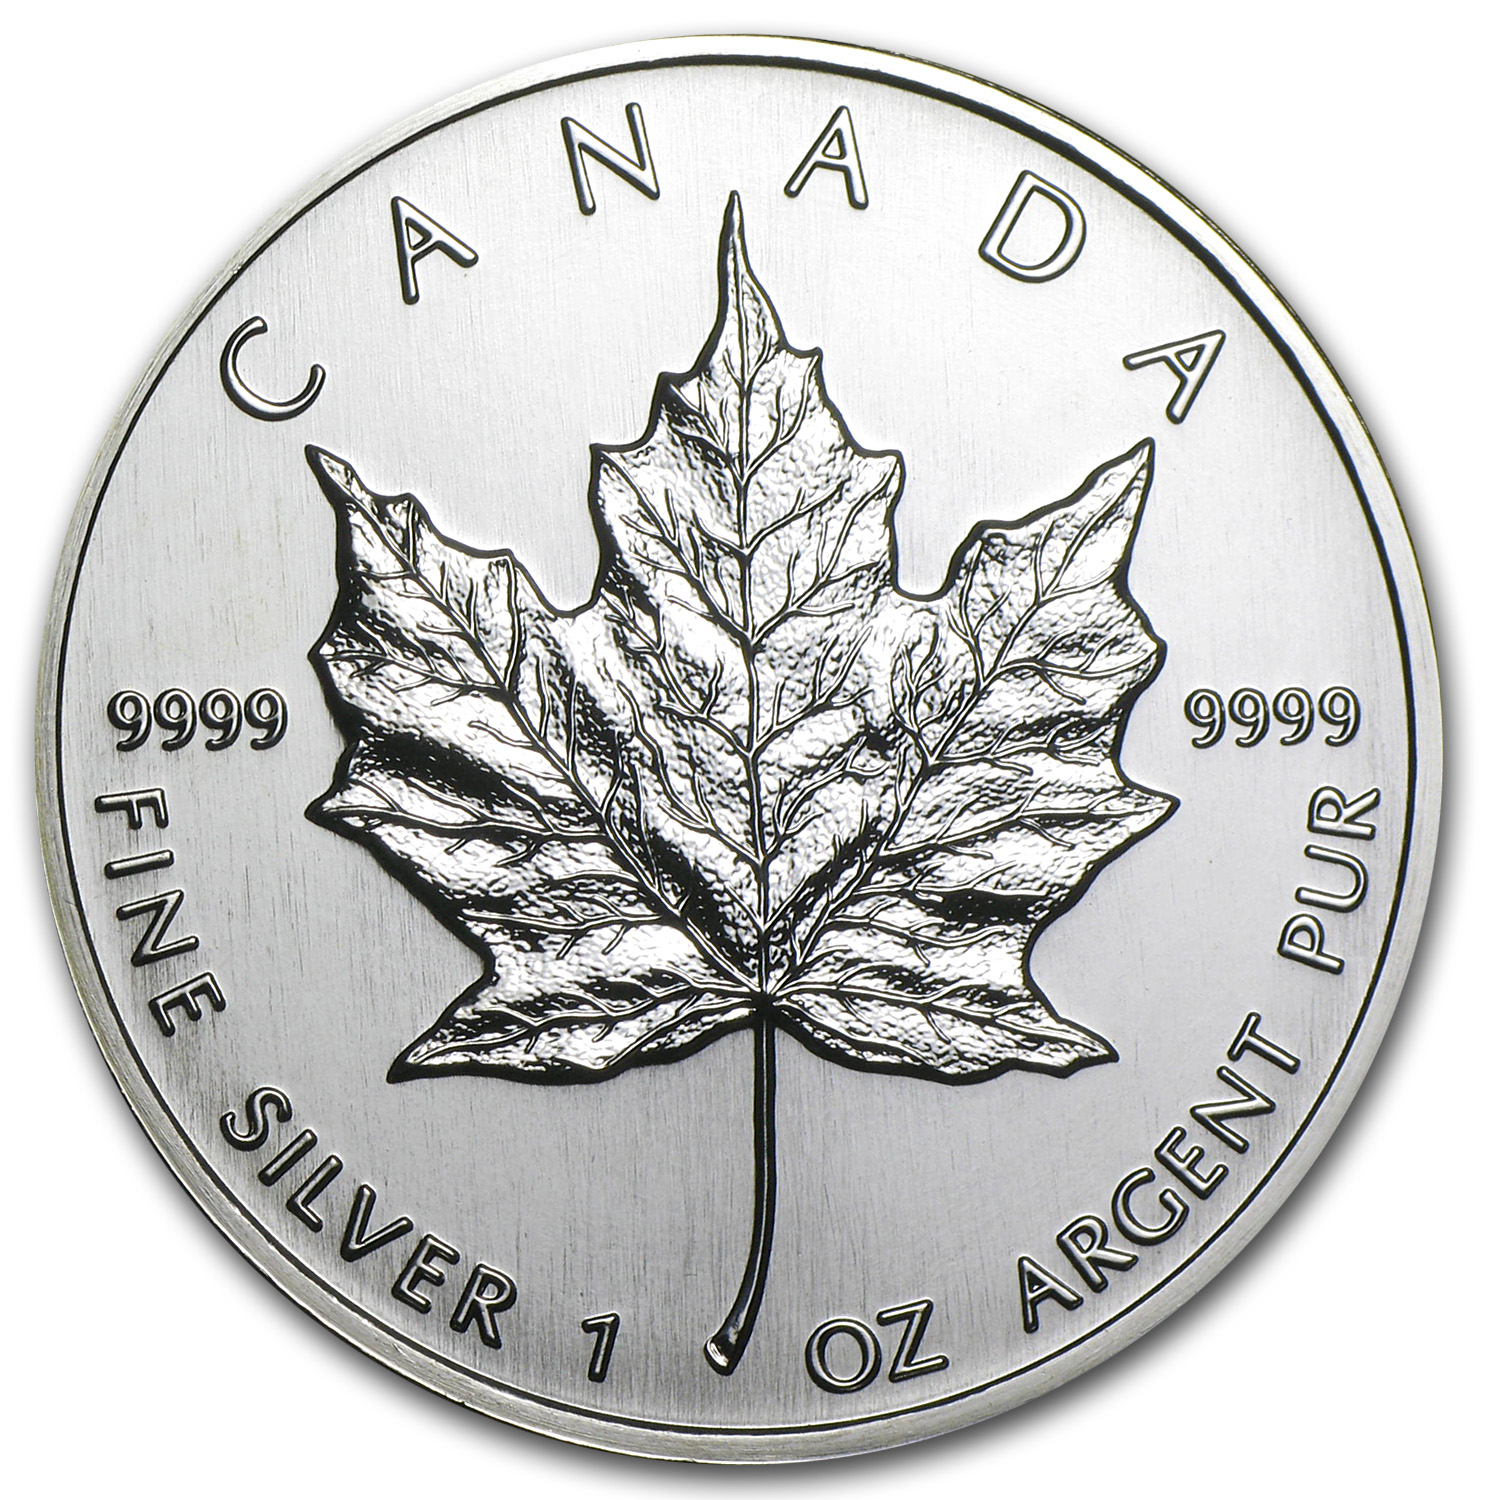 1994 1 oz Silver Canadian Maple Leaf (Brilliant Uncirculated)